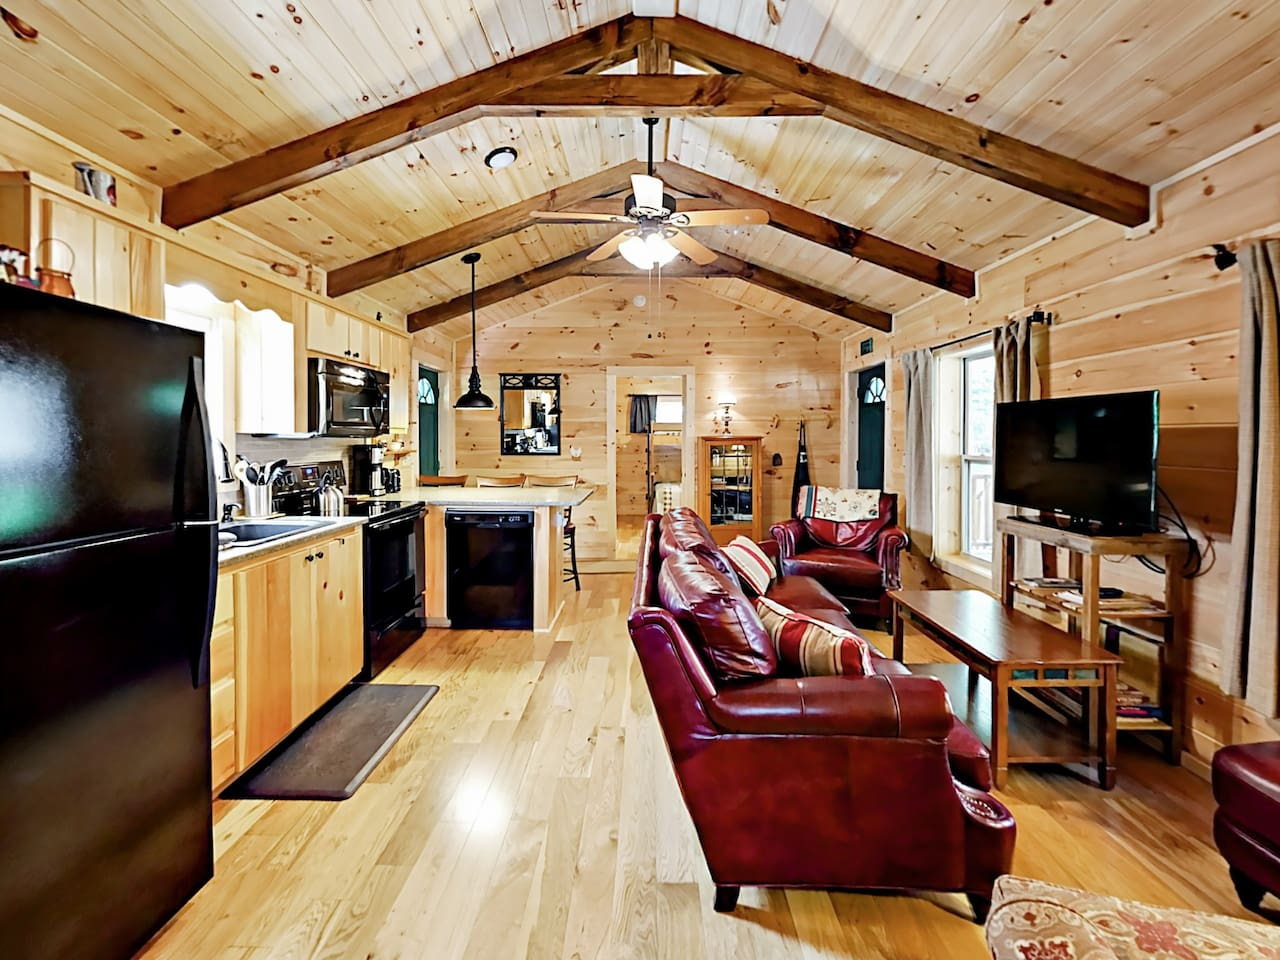 Affectionately known as Creekside, the 1st cabin offers a stylish open floor plan.